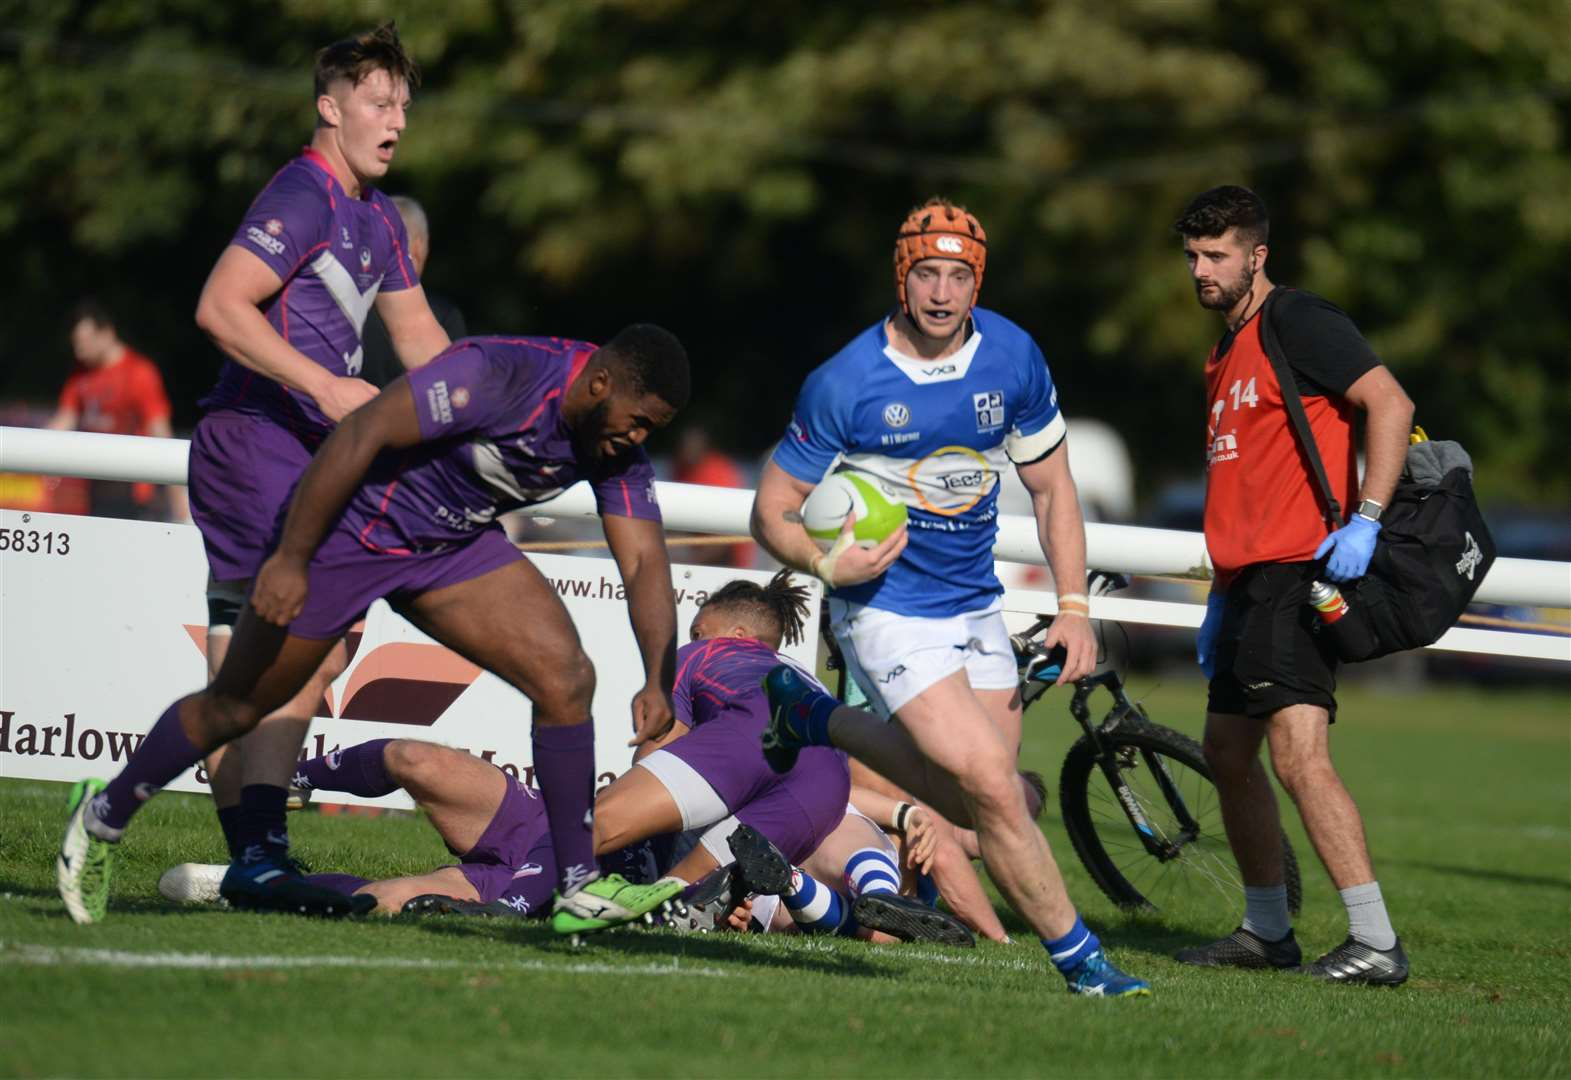 Losing bonus point proves elusive for battling Stortford